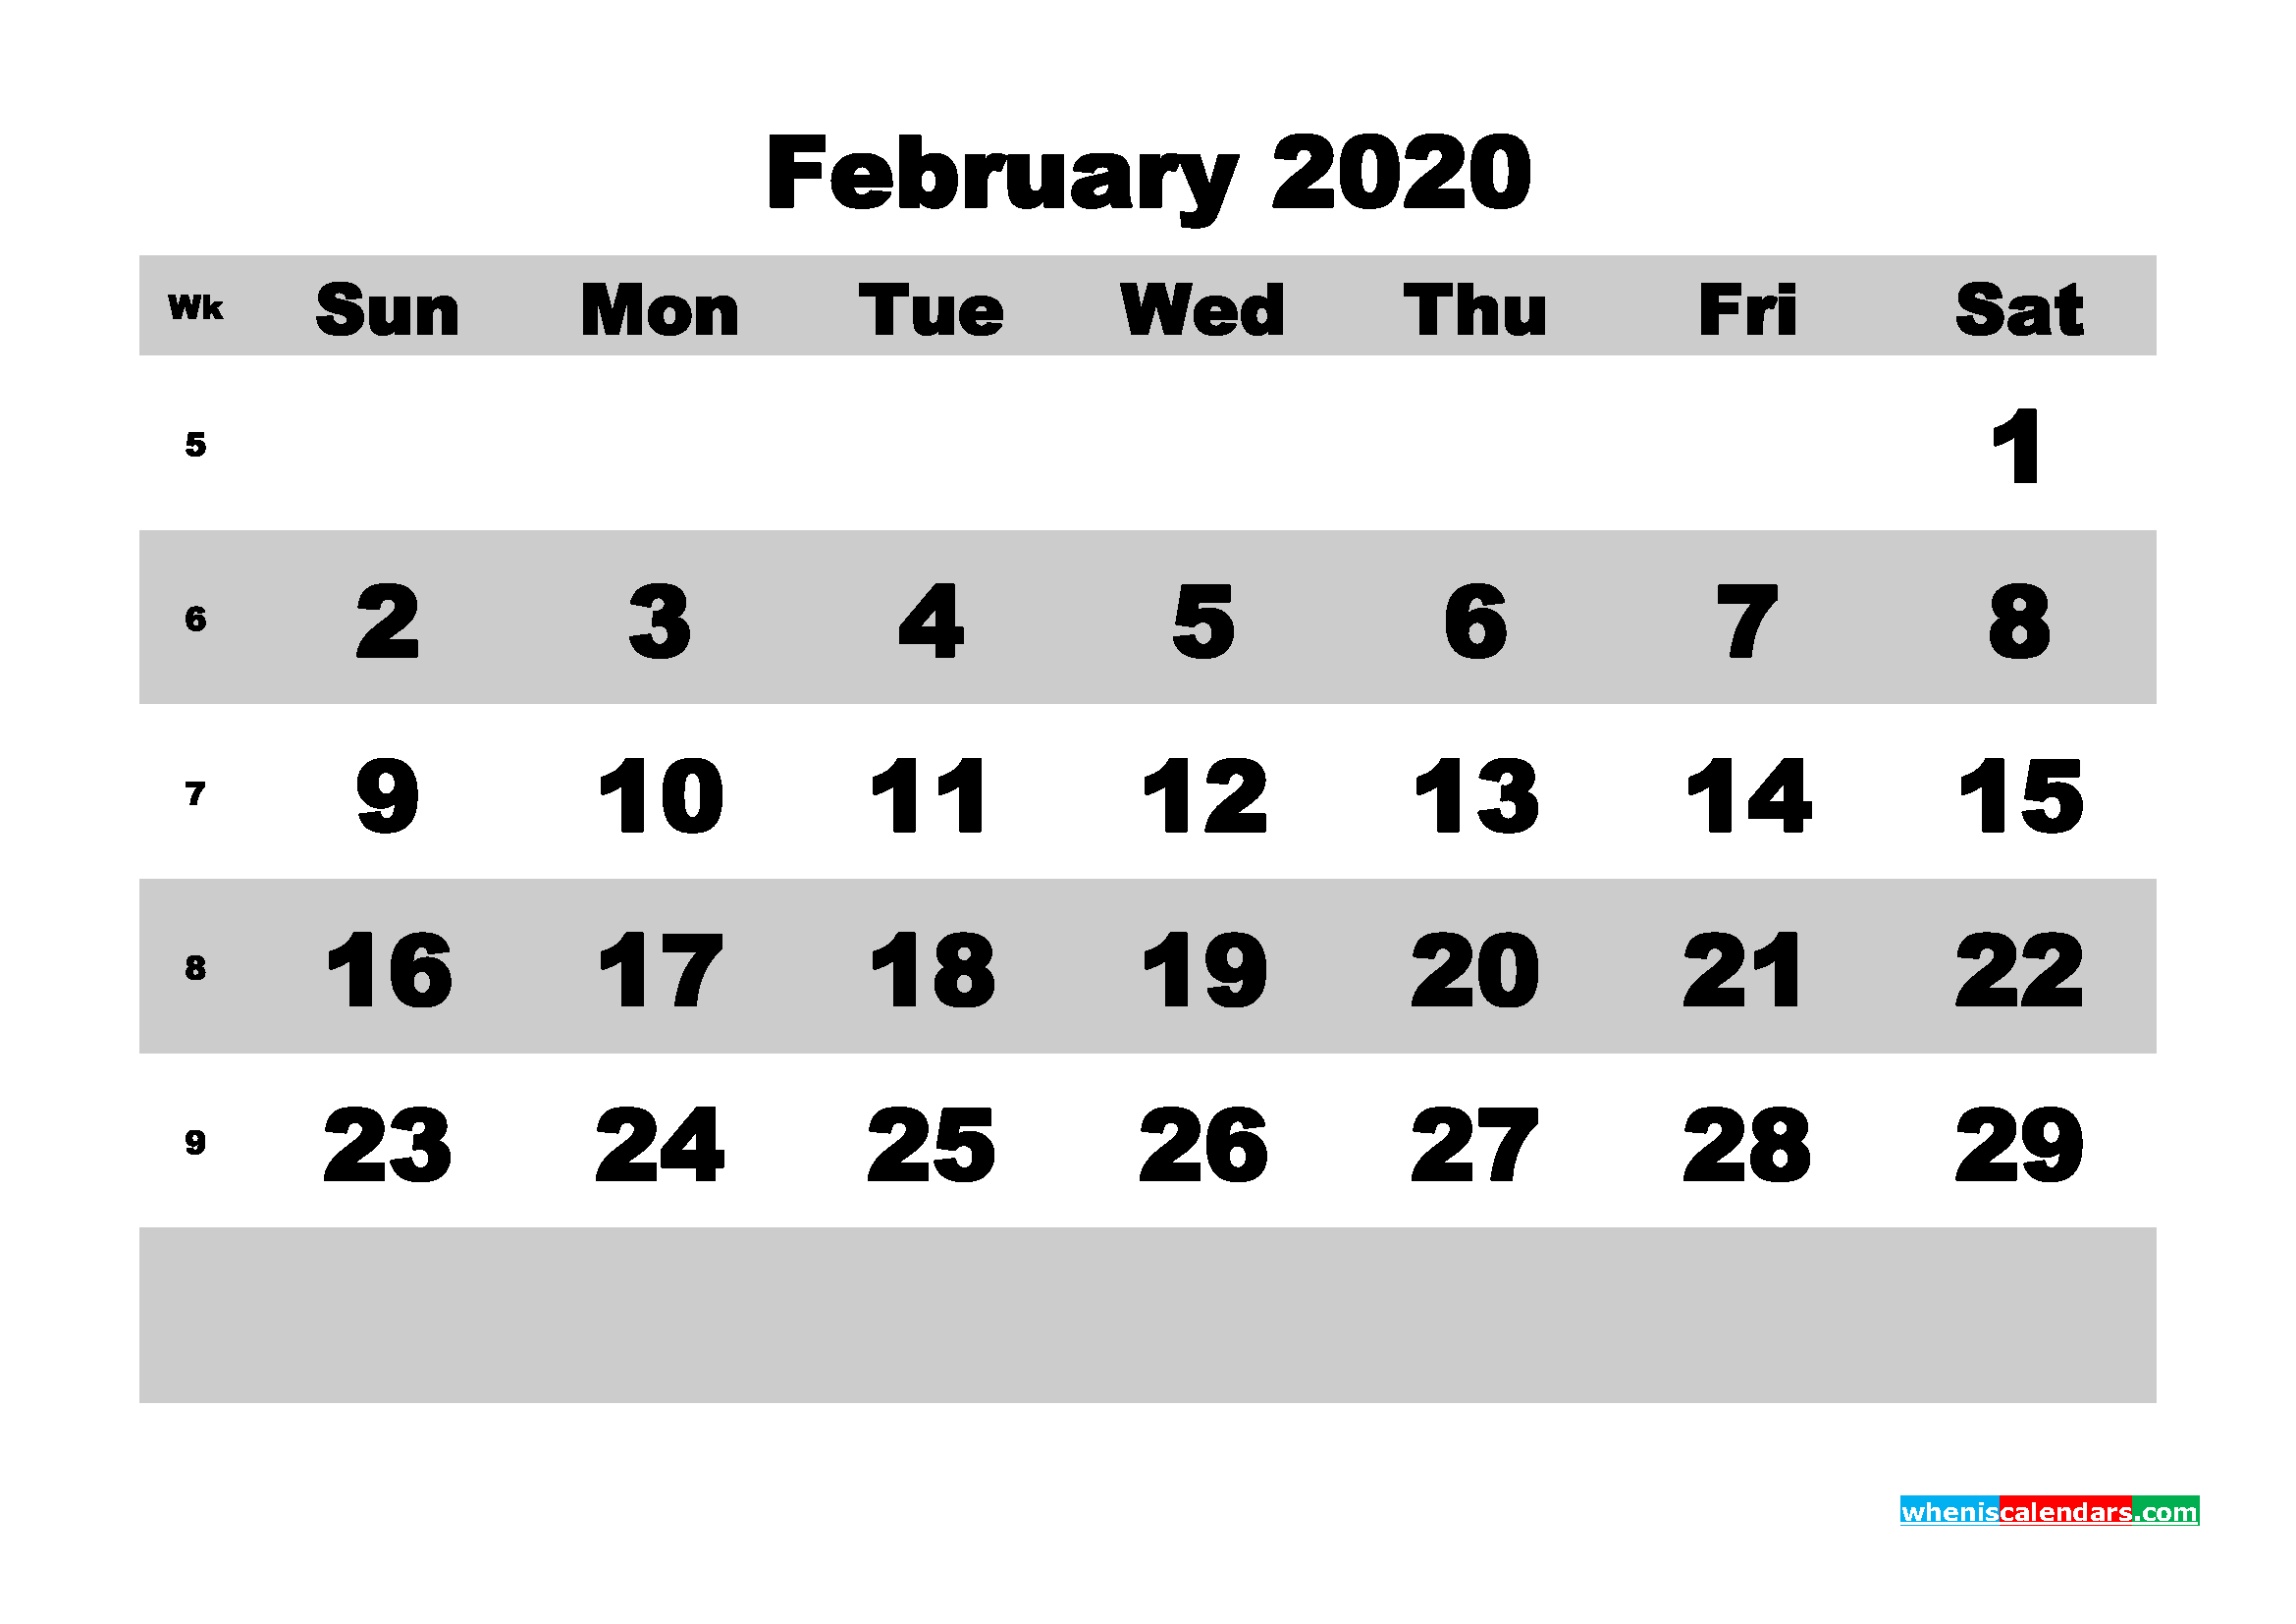 February Printable Calendar 2020 PDF, Word - No.m20b590